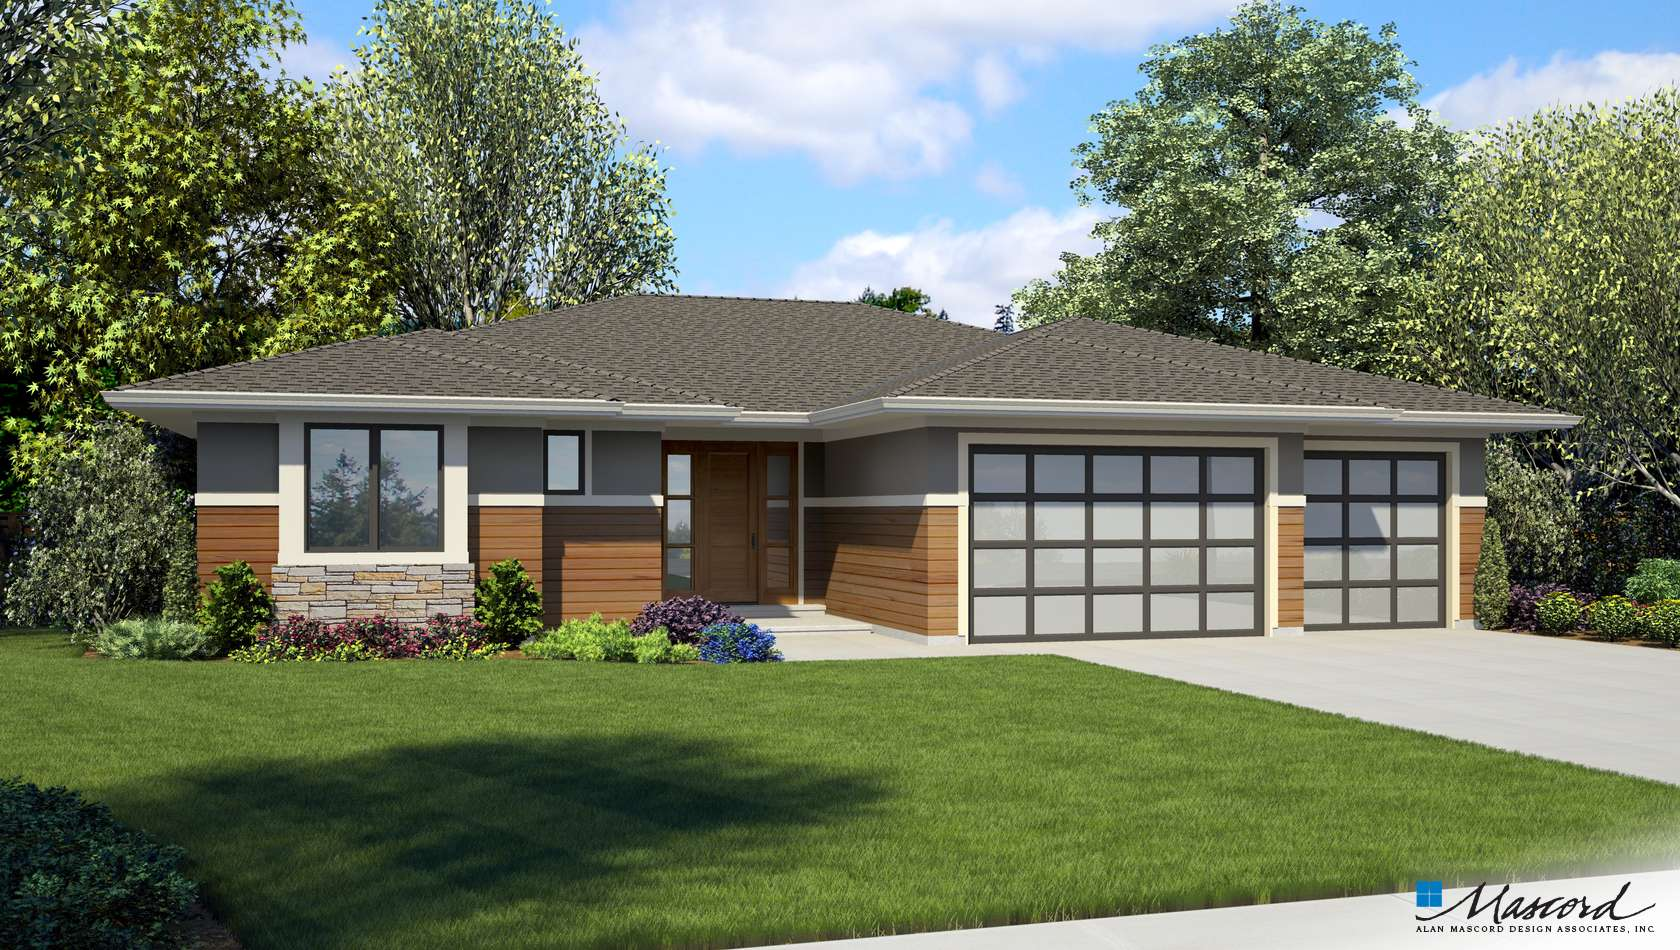 Main image for house plan 1247B: The Erwin